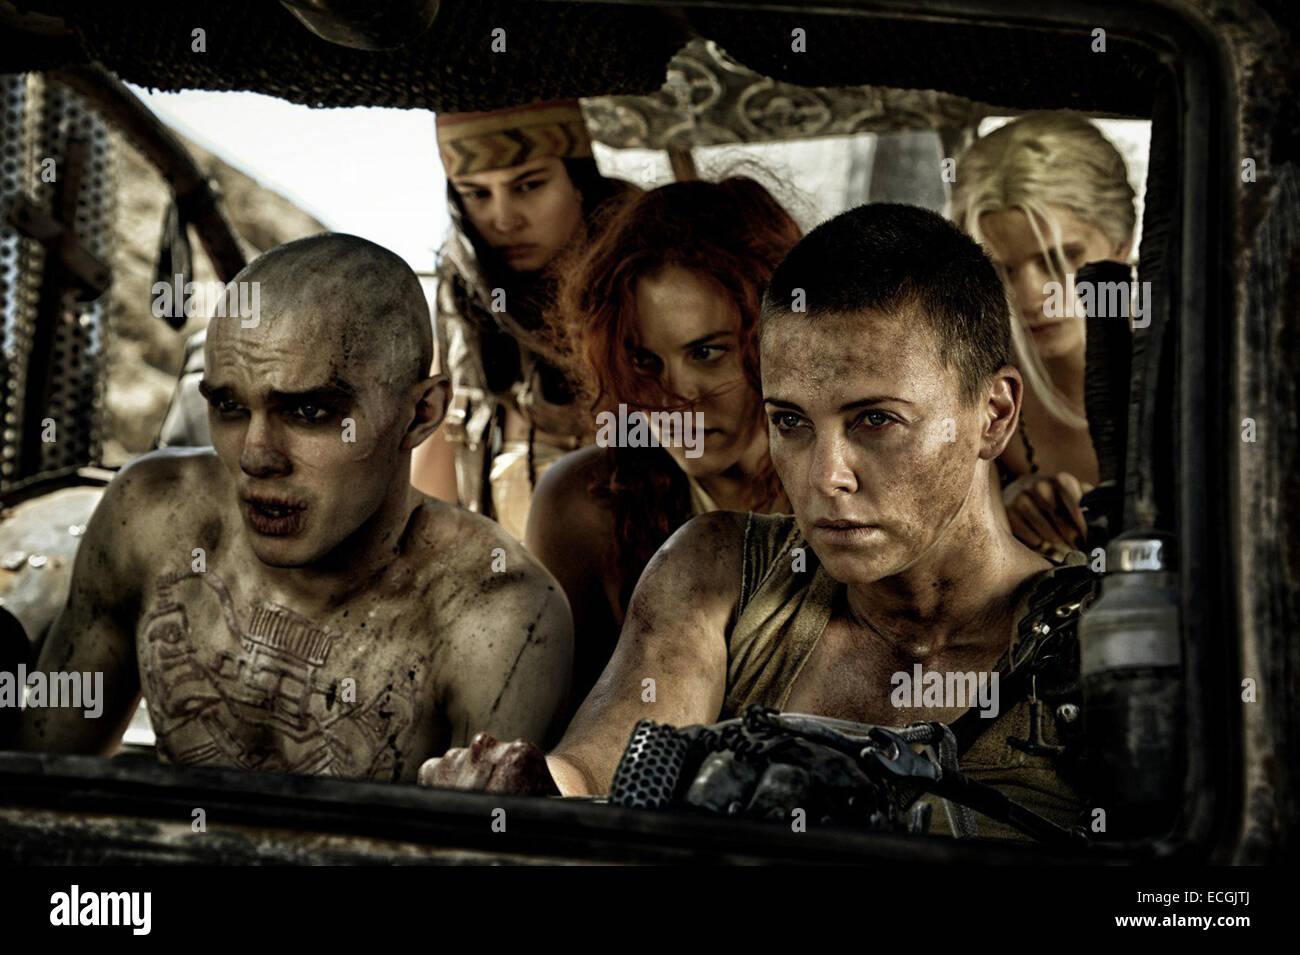 Mad Max: Fury Road is an upcoming post-apocalyptic action film directed, produced and co-written by George Miller, - Stock Image